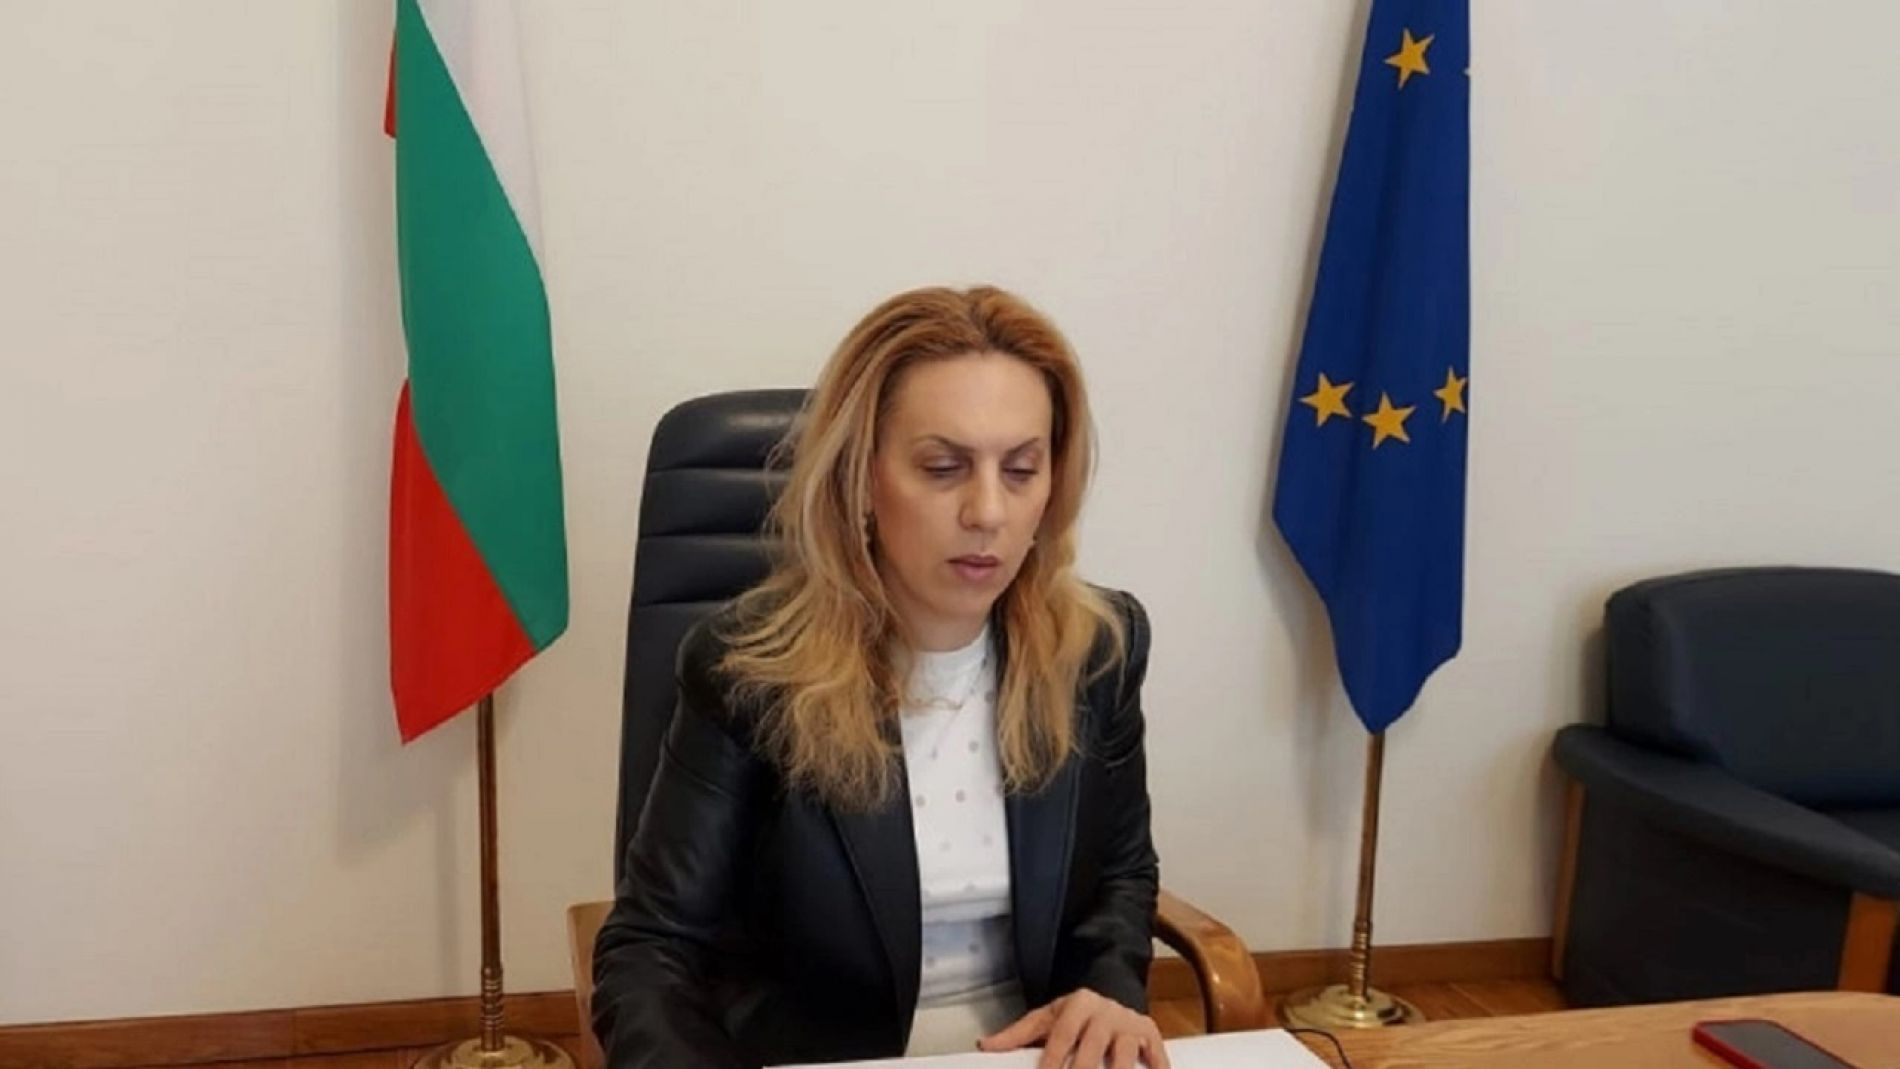 Nikolova revealed the conditions under which foreign tourists will spend their holidays in Bulgaria